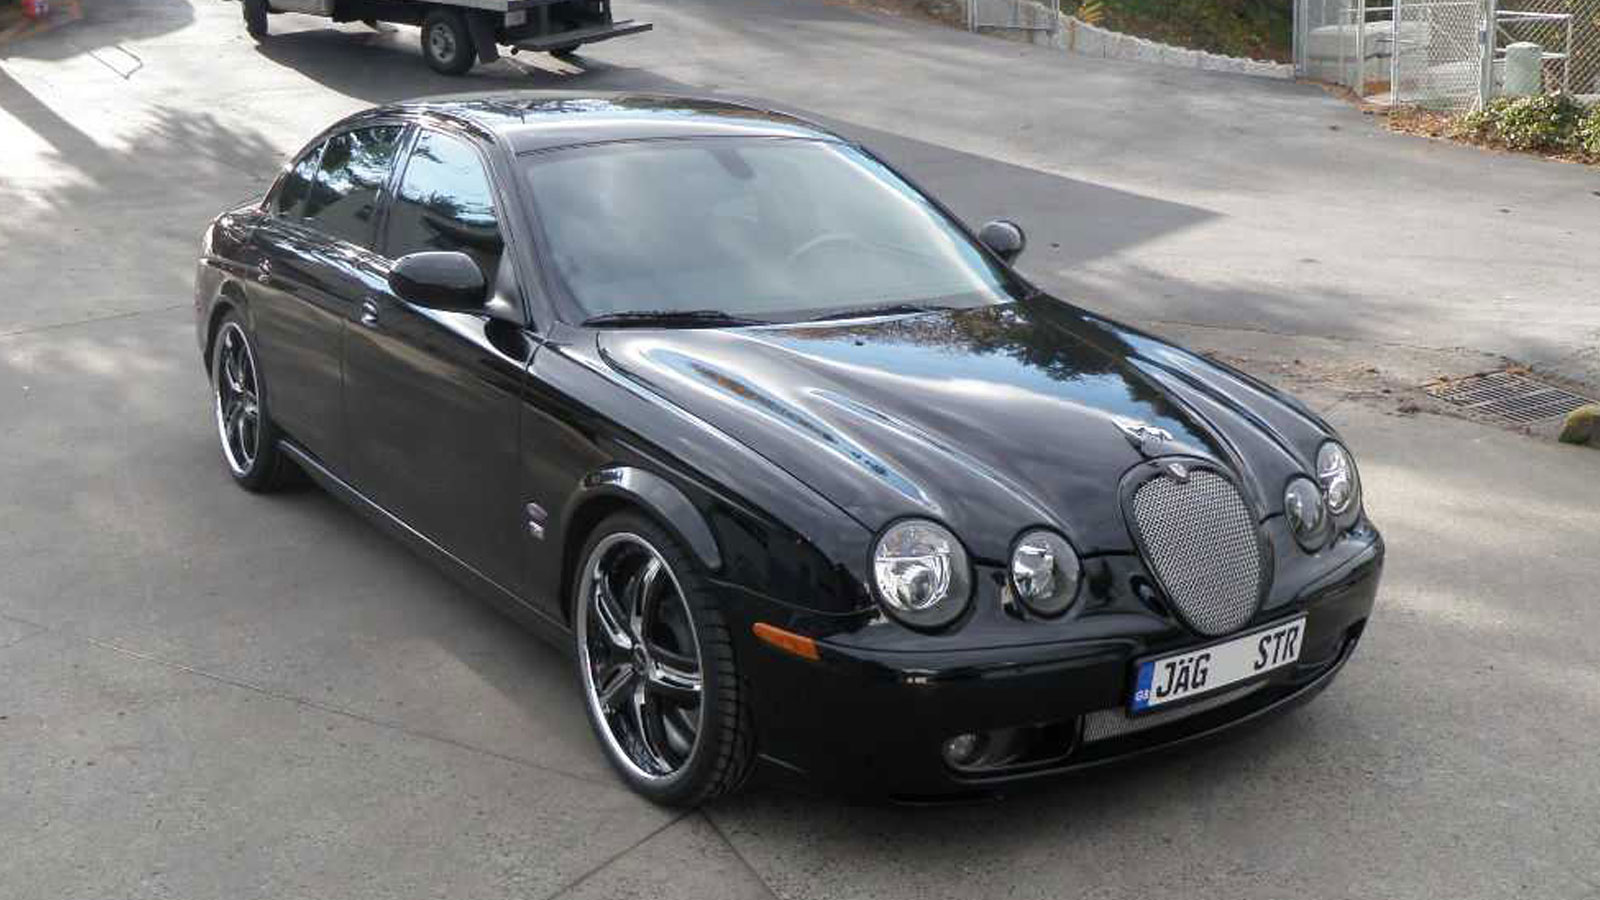 Jaguar S-type #17